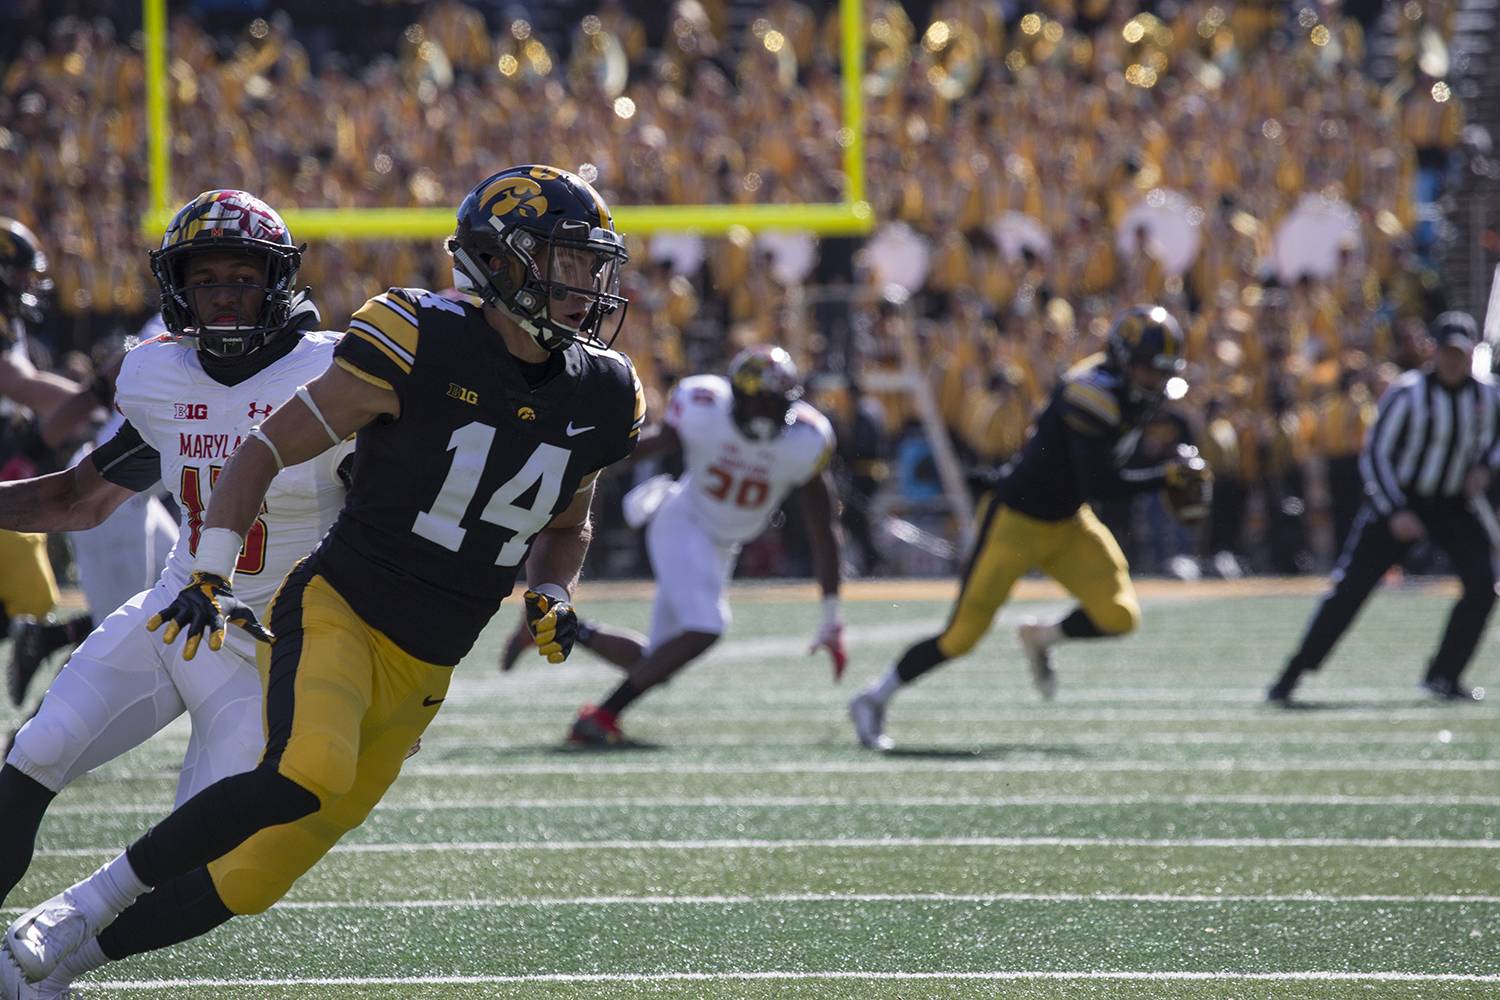 Hawkeye+Kyle+Groenewag+runs+towards+the+end+zone+during+the+Iowa+vs.+Maryland+game+at+Kinnick+stadium+on+Saturday+Oct.+20%2C+2018.+The+Hawkeyes+defeated+the+Terrapins+23-0.+